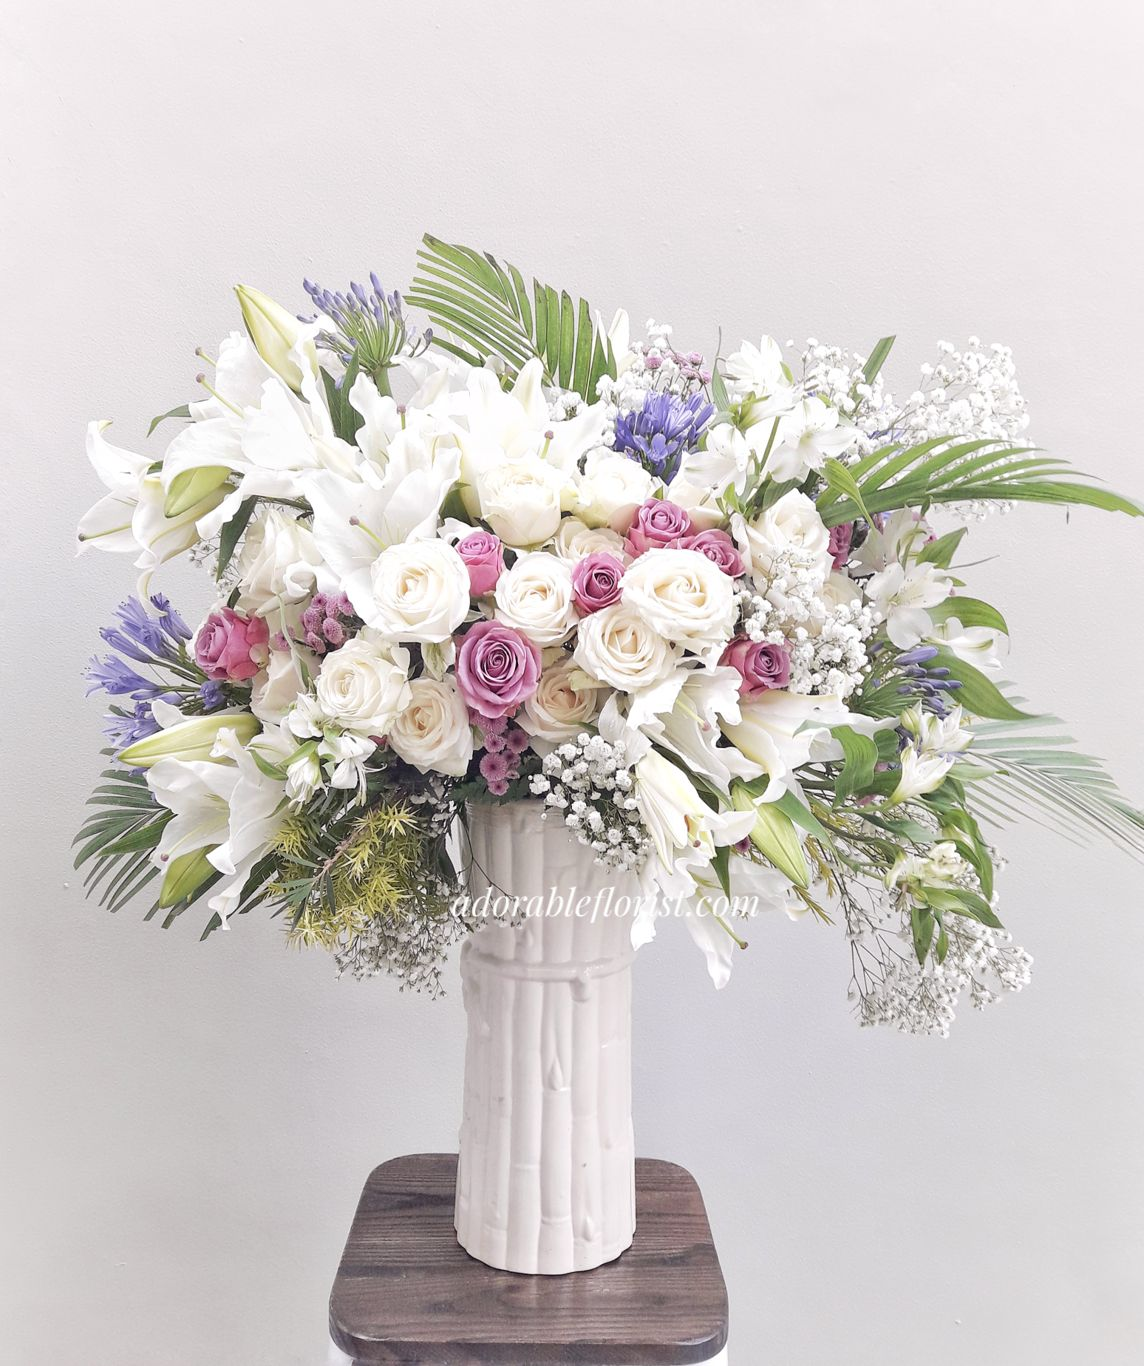 Table Arrangement-35 1